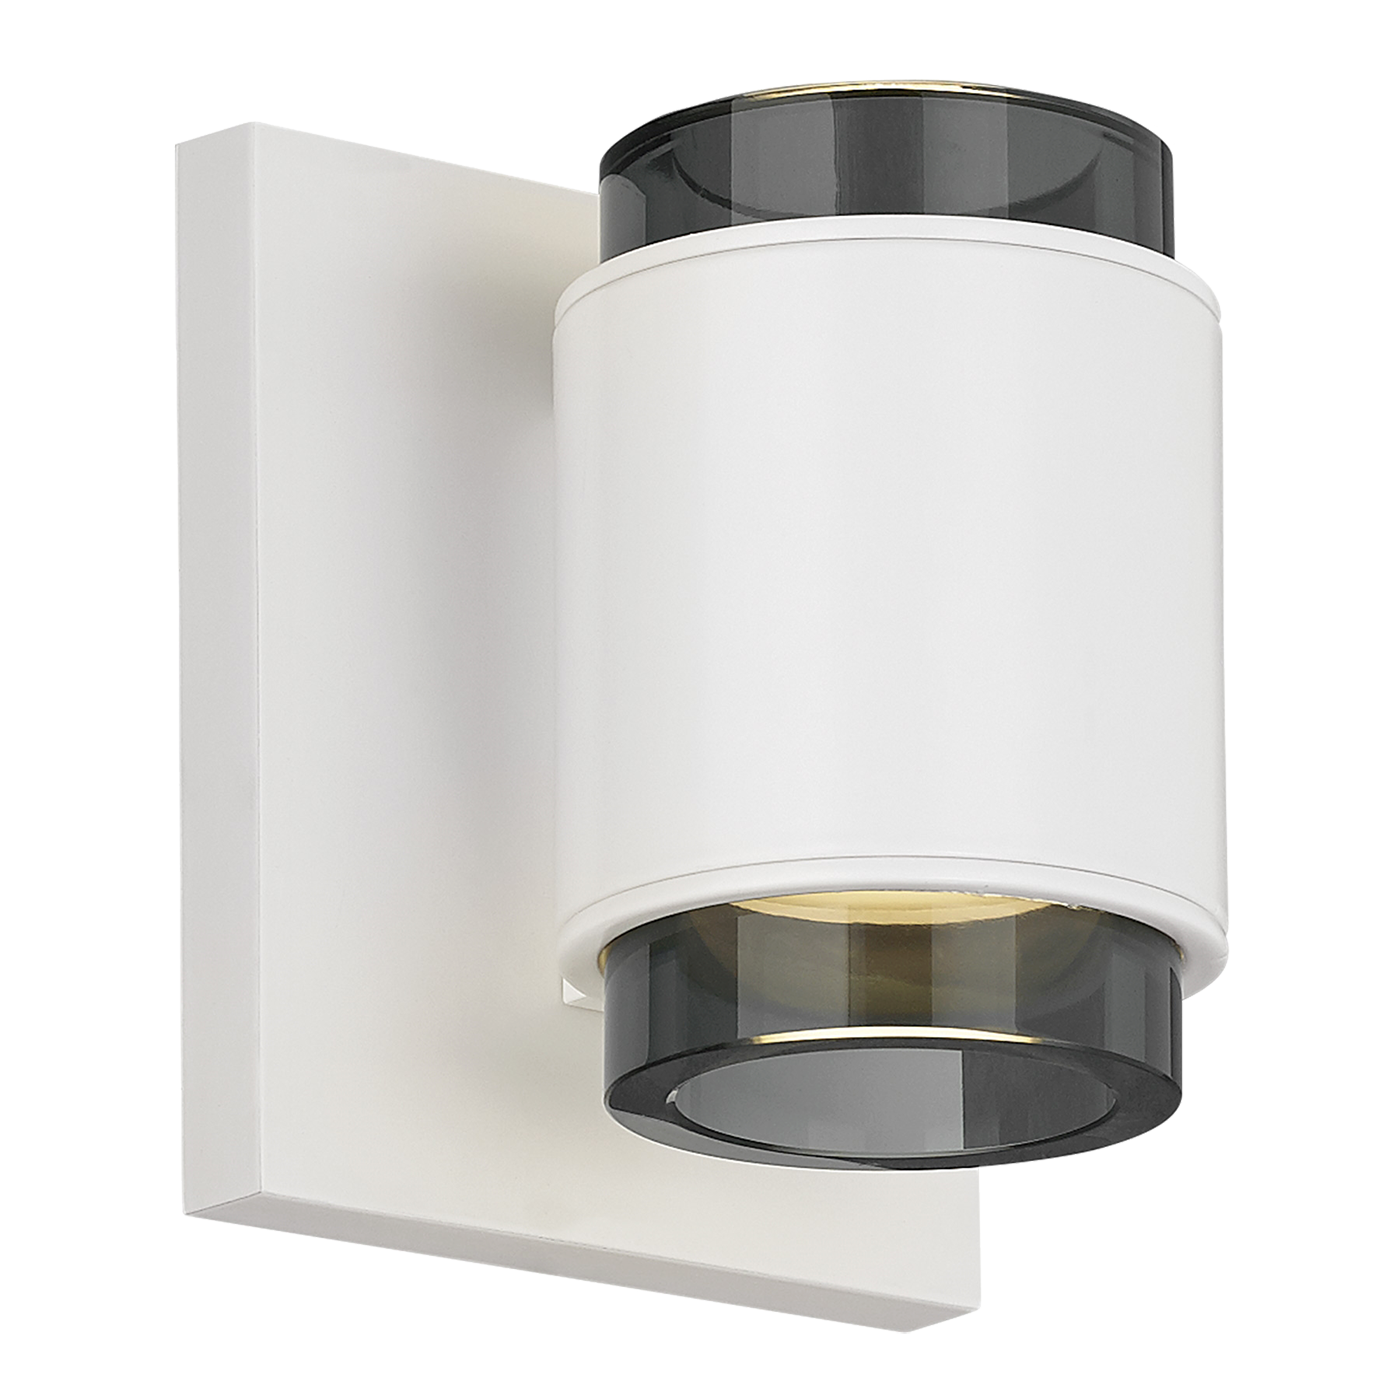 Voto Round Wall Sconce Sconces Wall Sconces Wall